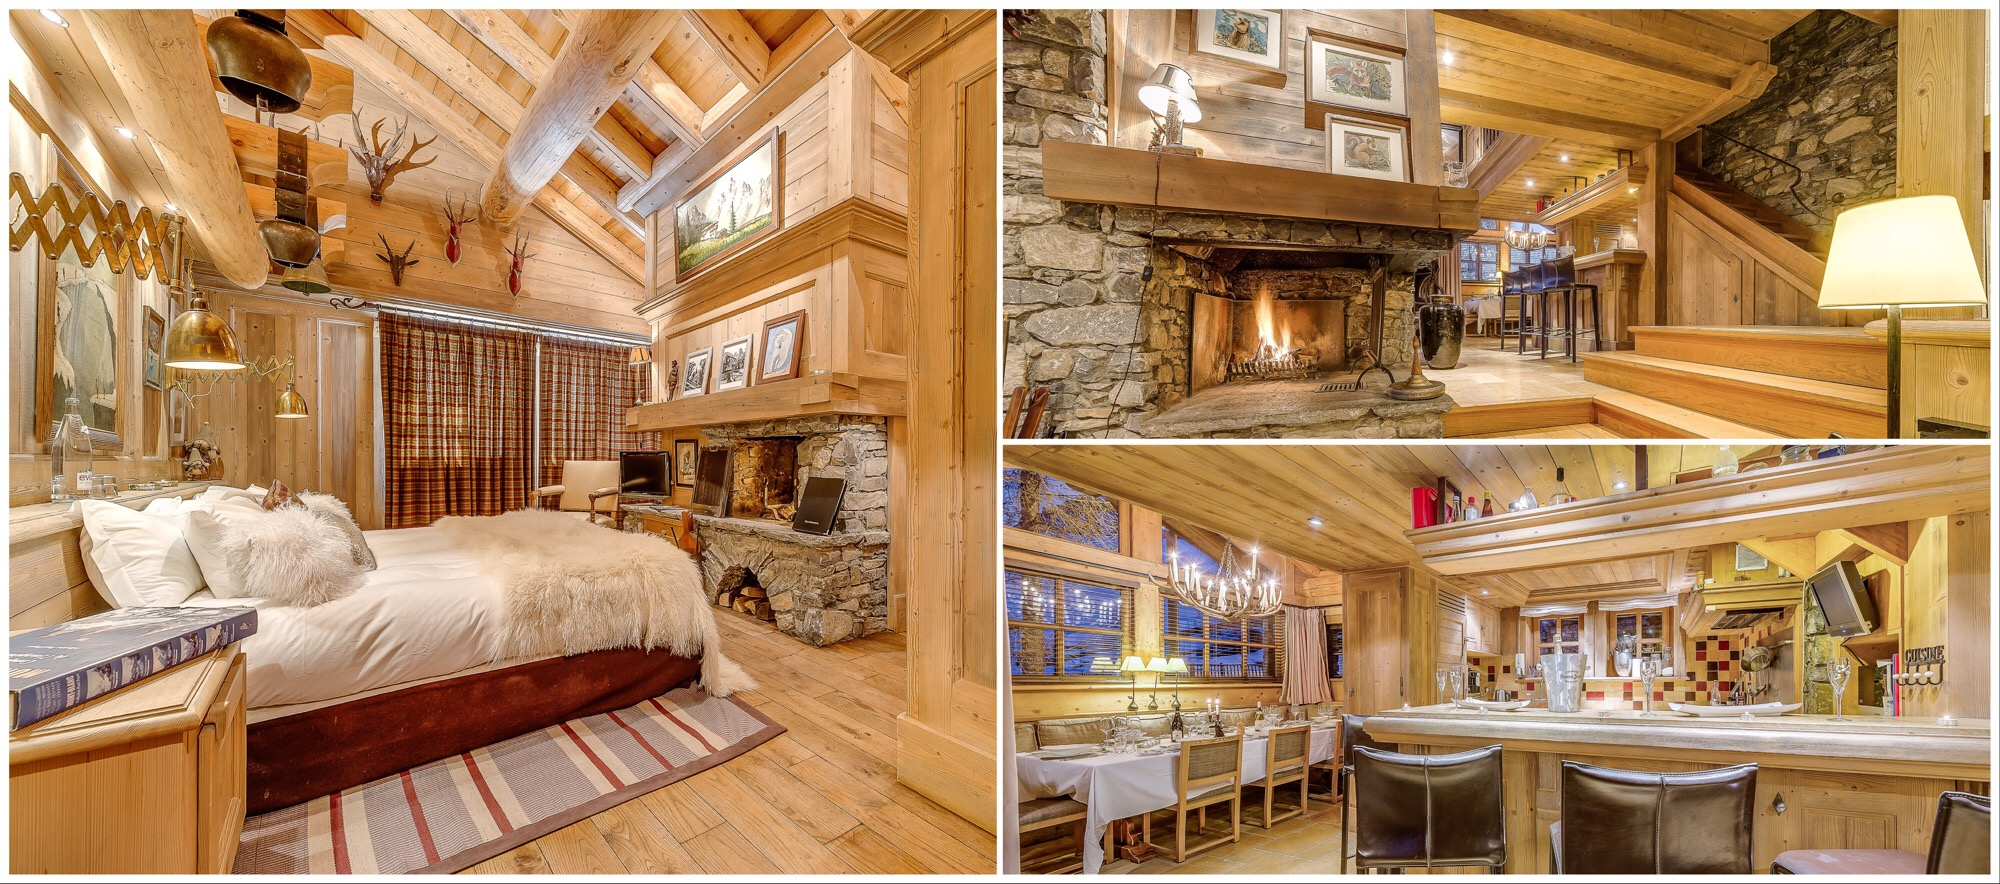 Ski chalet Montana, Val d'Isère - master bedroom, fireplace, bar and dinner setting